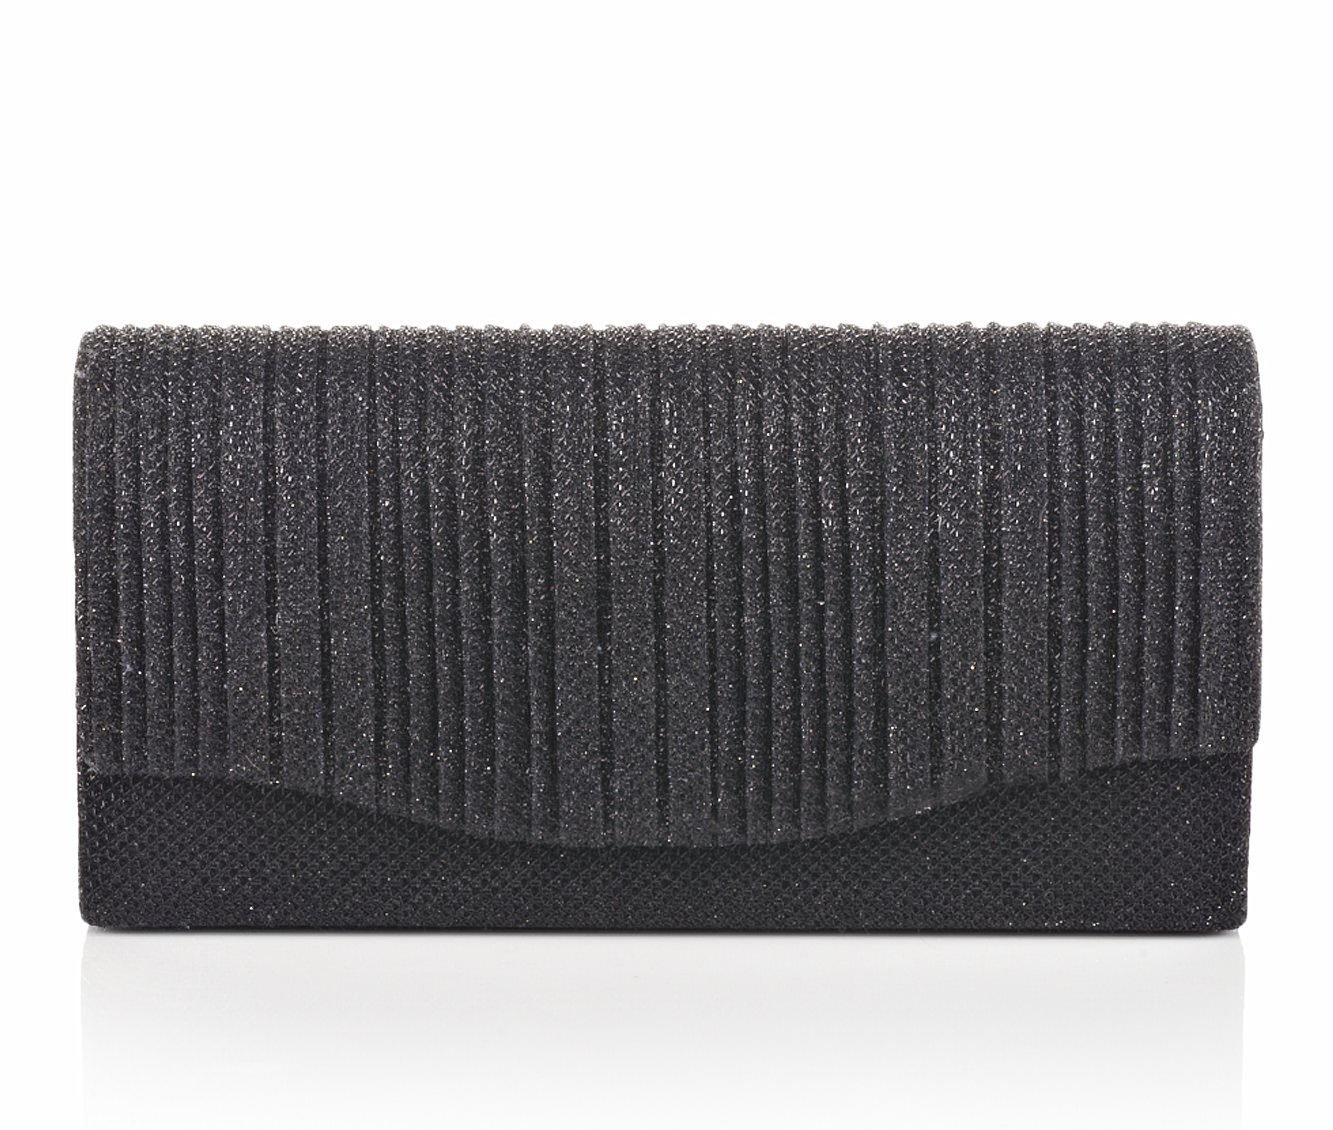 Four Seasons Handbags Small Vertical Stripe Evening Clutch (Black)